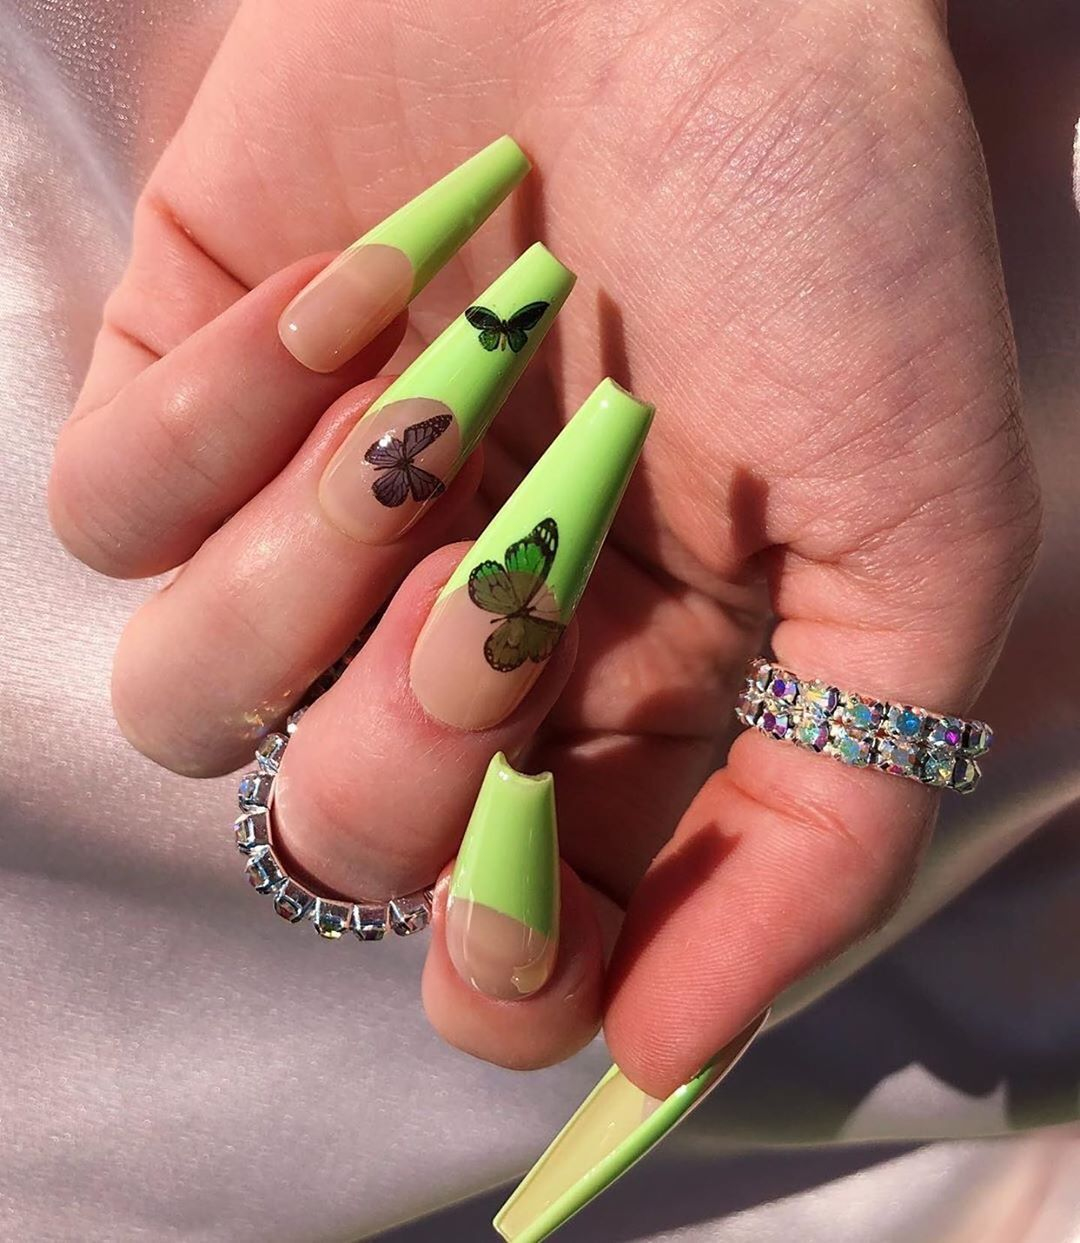 Butterflies In 2020 Green Nails Green Acrylic Nails Neon Green Nails